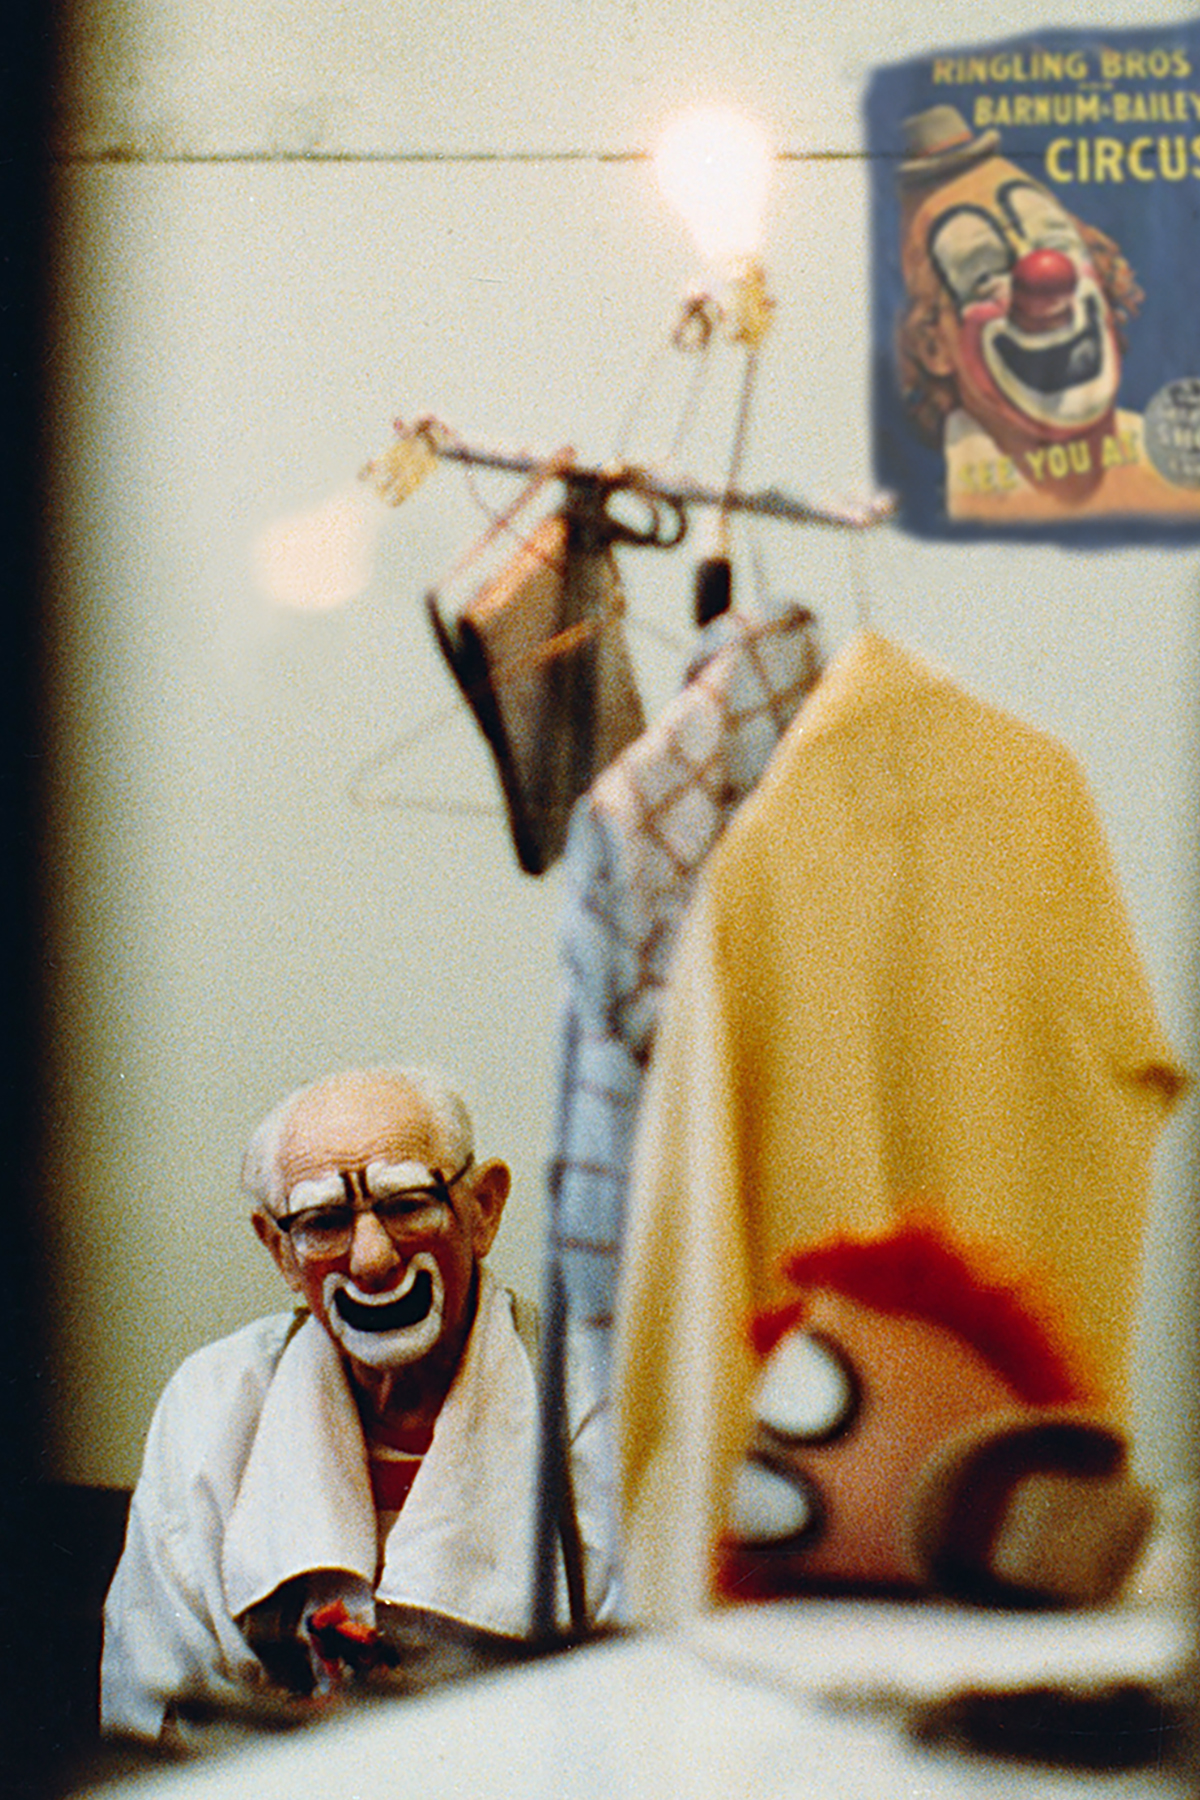 LOU JACOBS, OLDEST RINGLING CLOWN